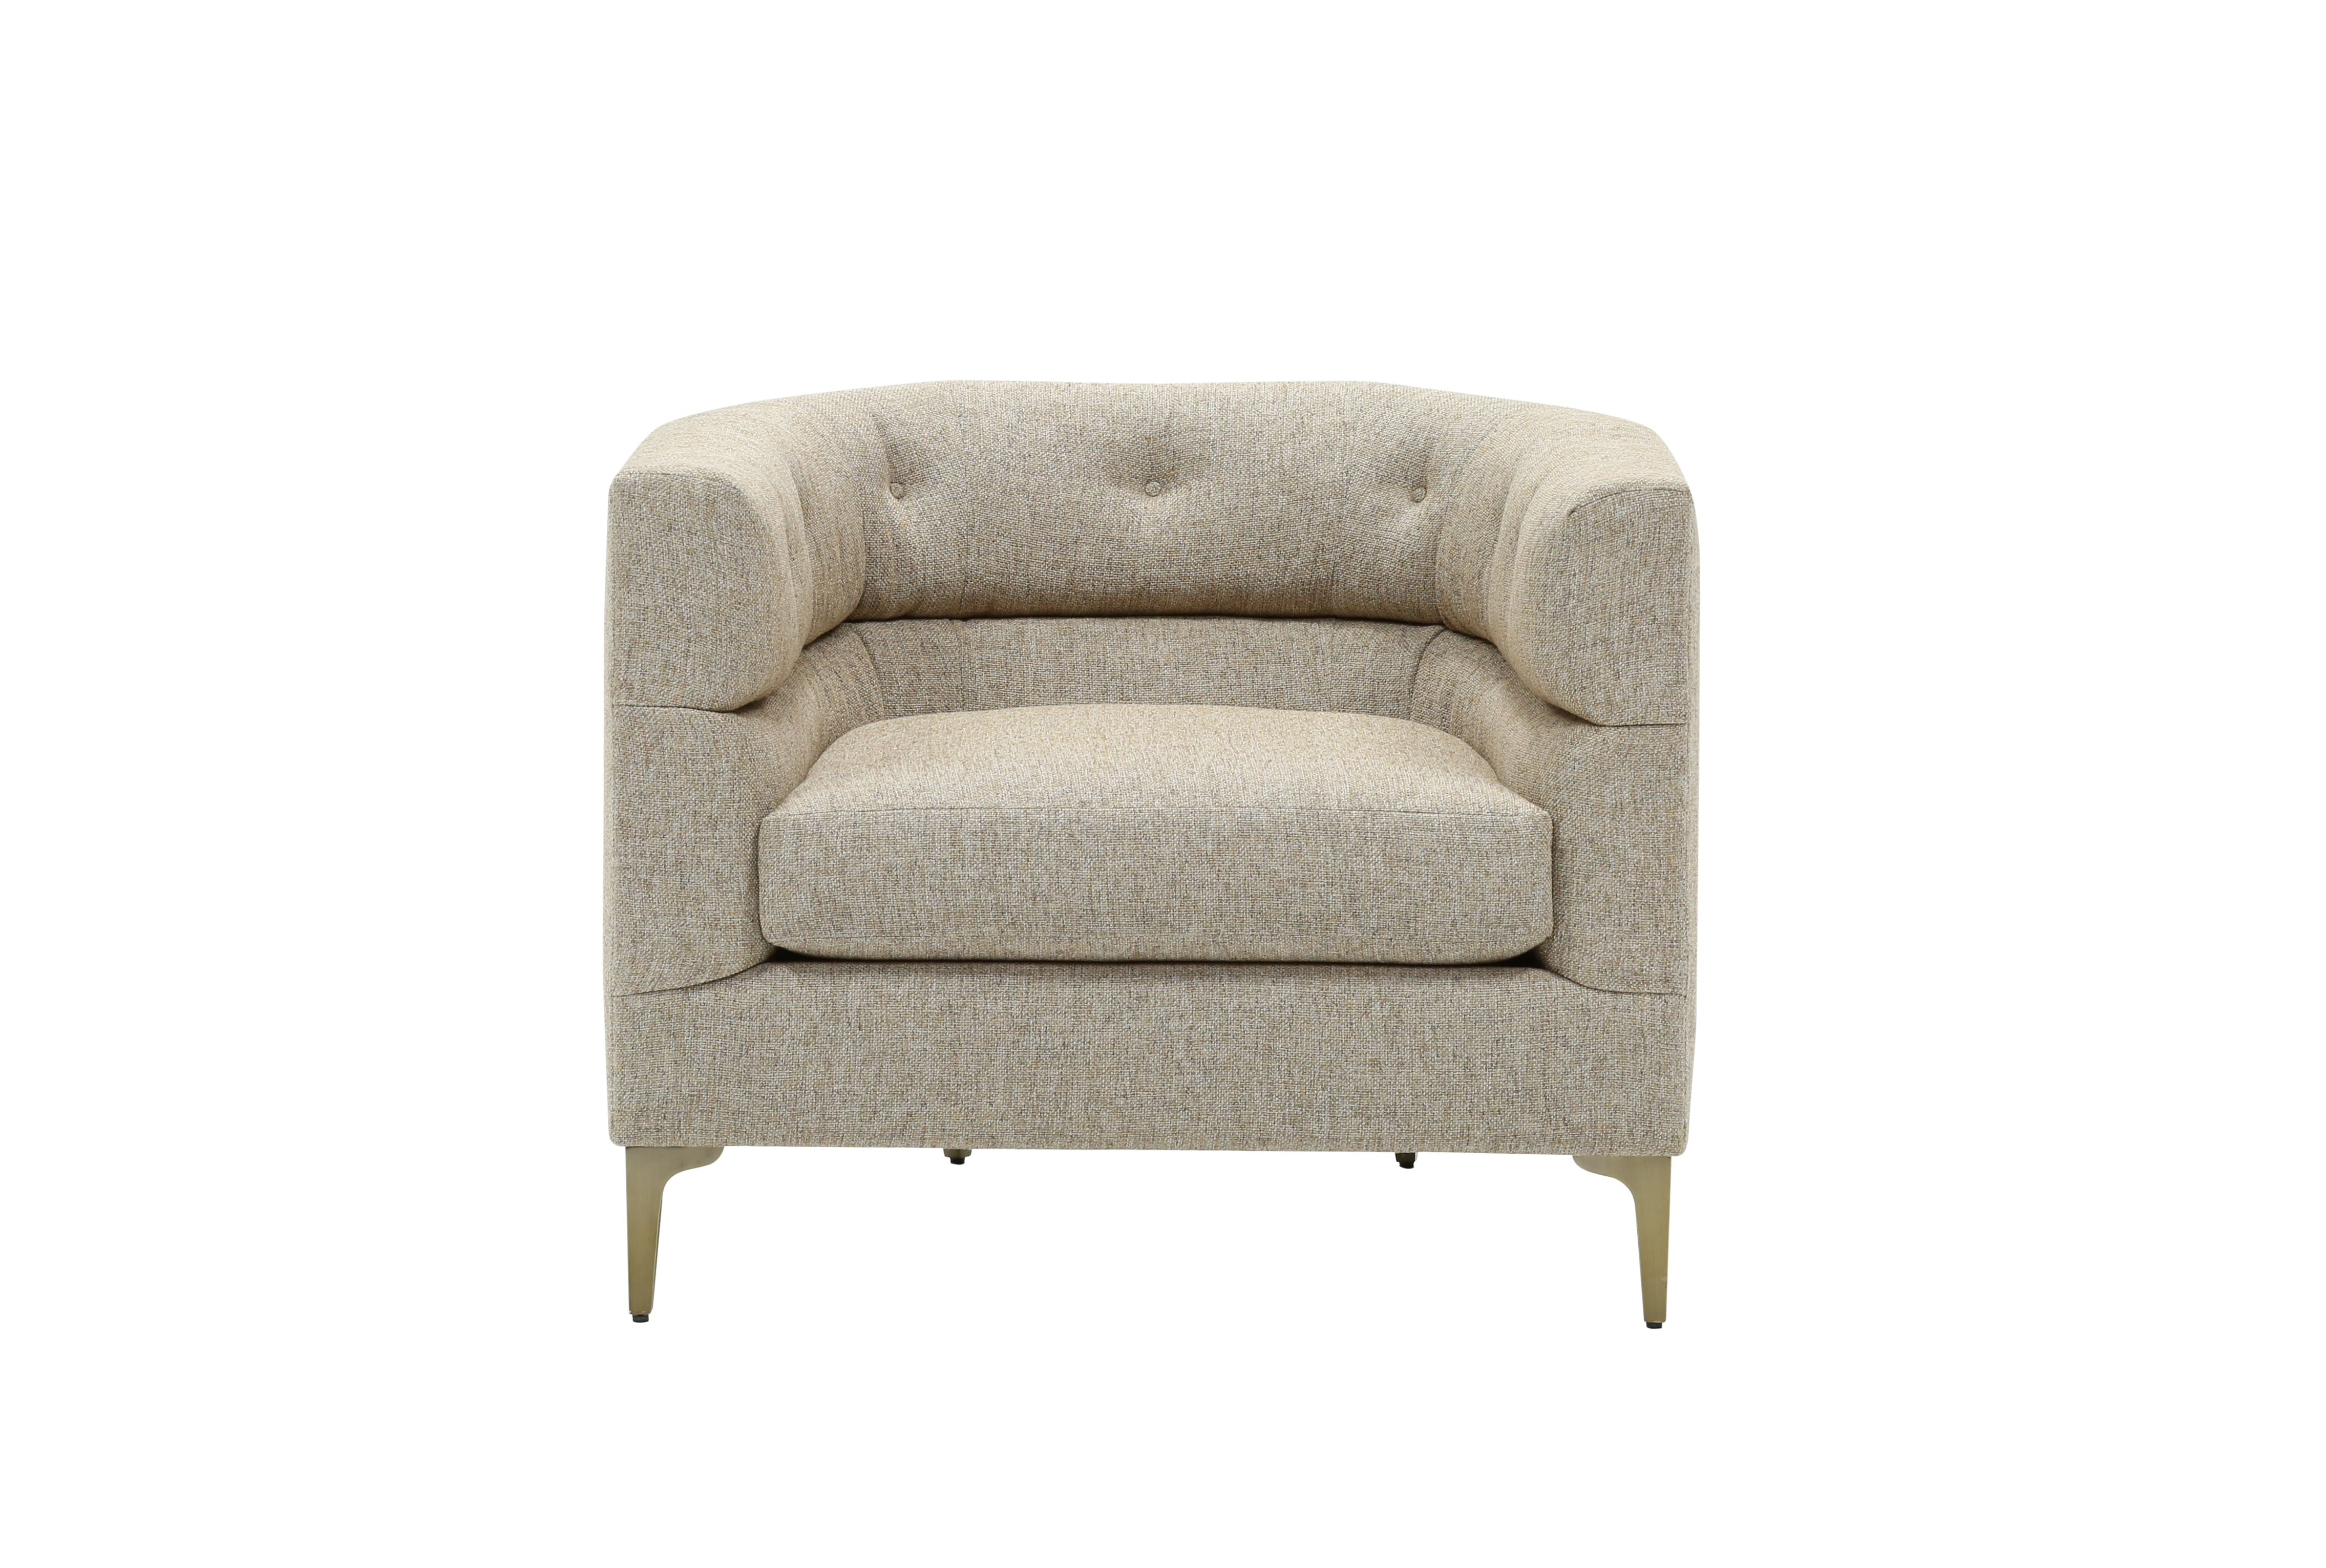 Nate Berkus Just Launched A Home Collection With Hubby Jeremiah With Regard To Liv Arm Sofa Chairs By Nate Berkus And Jeremiah Brent (Photo 3 of 25)